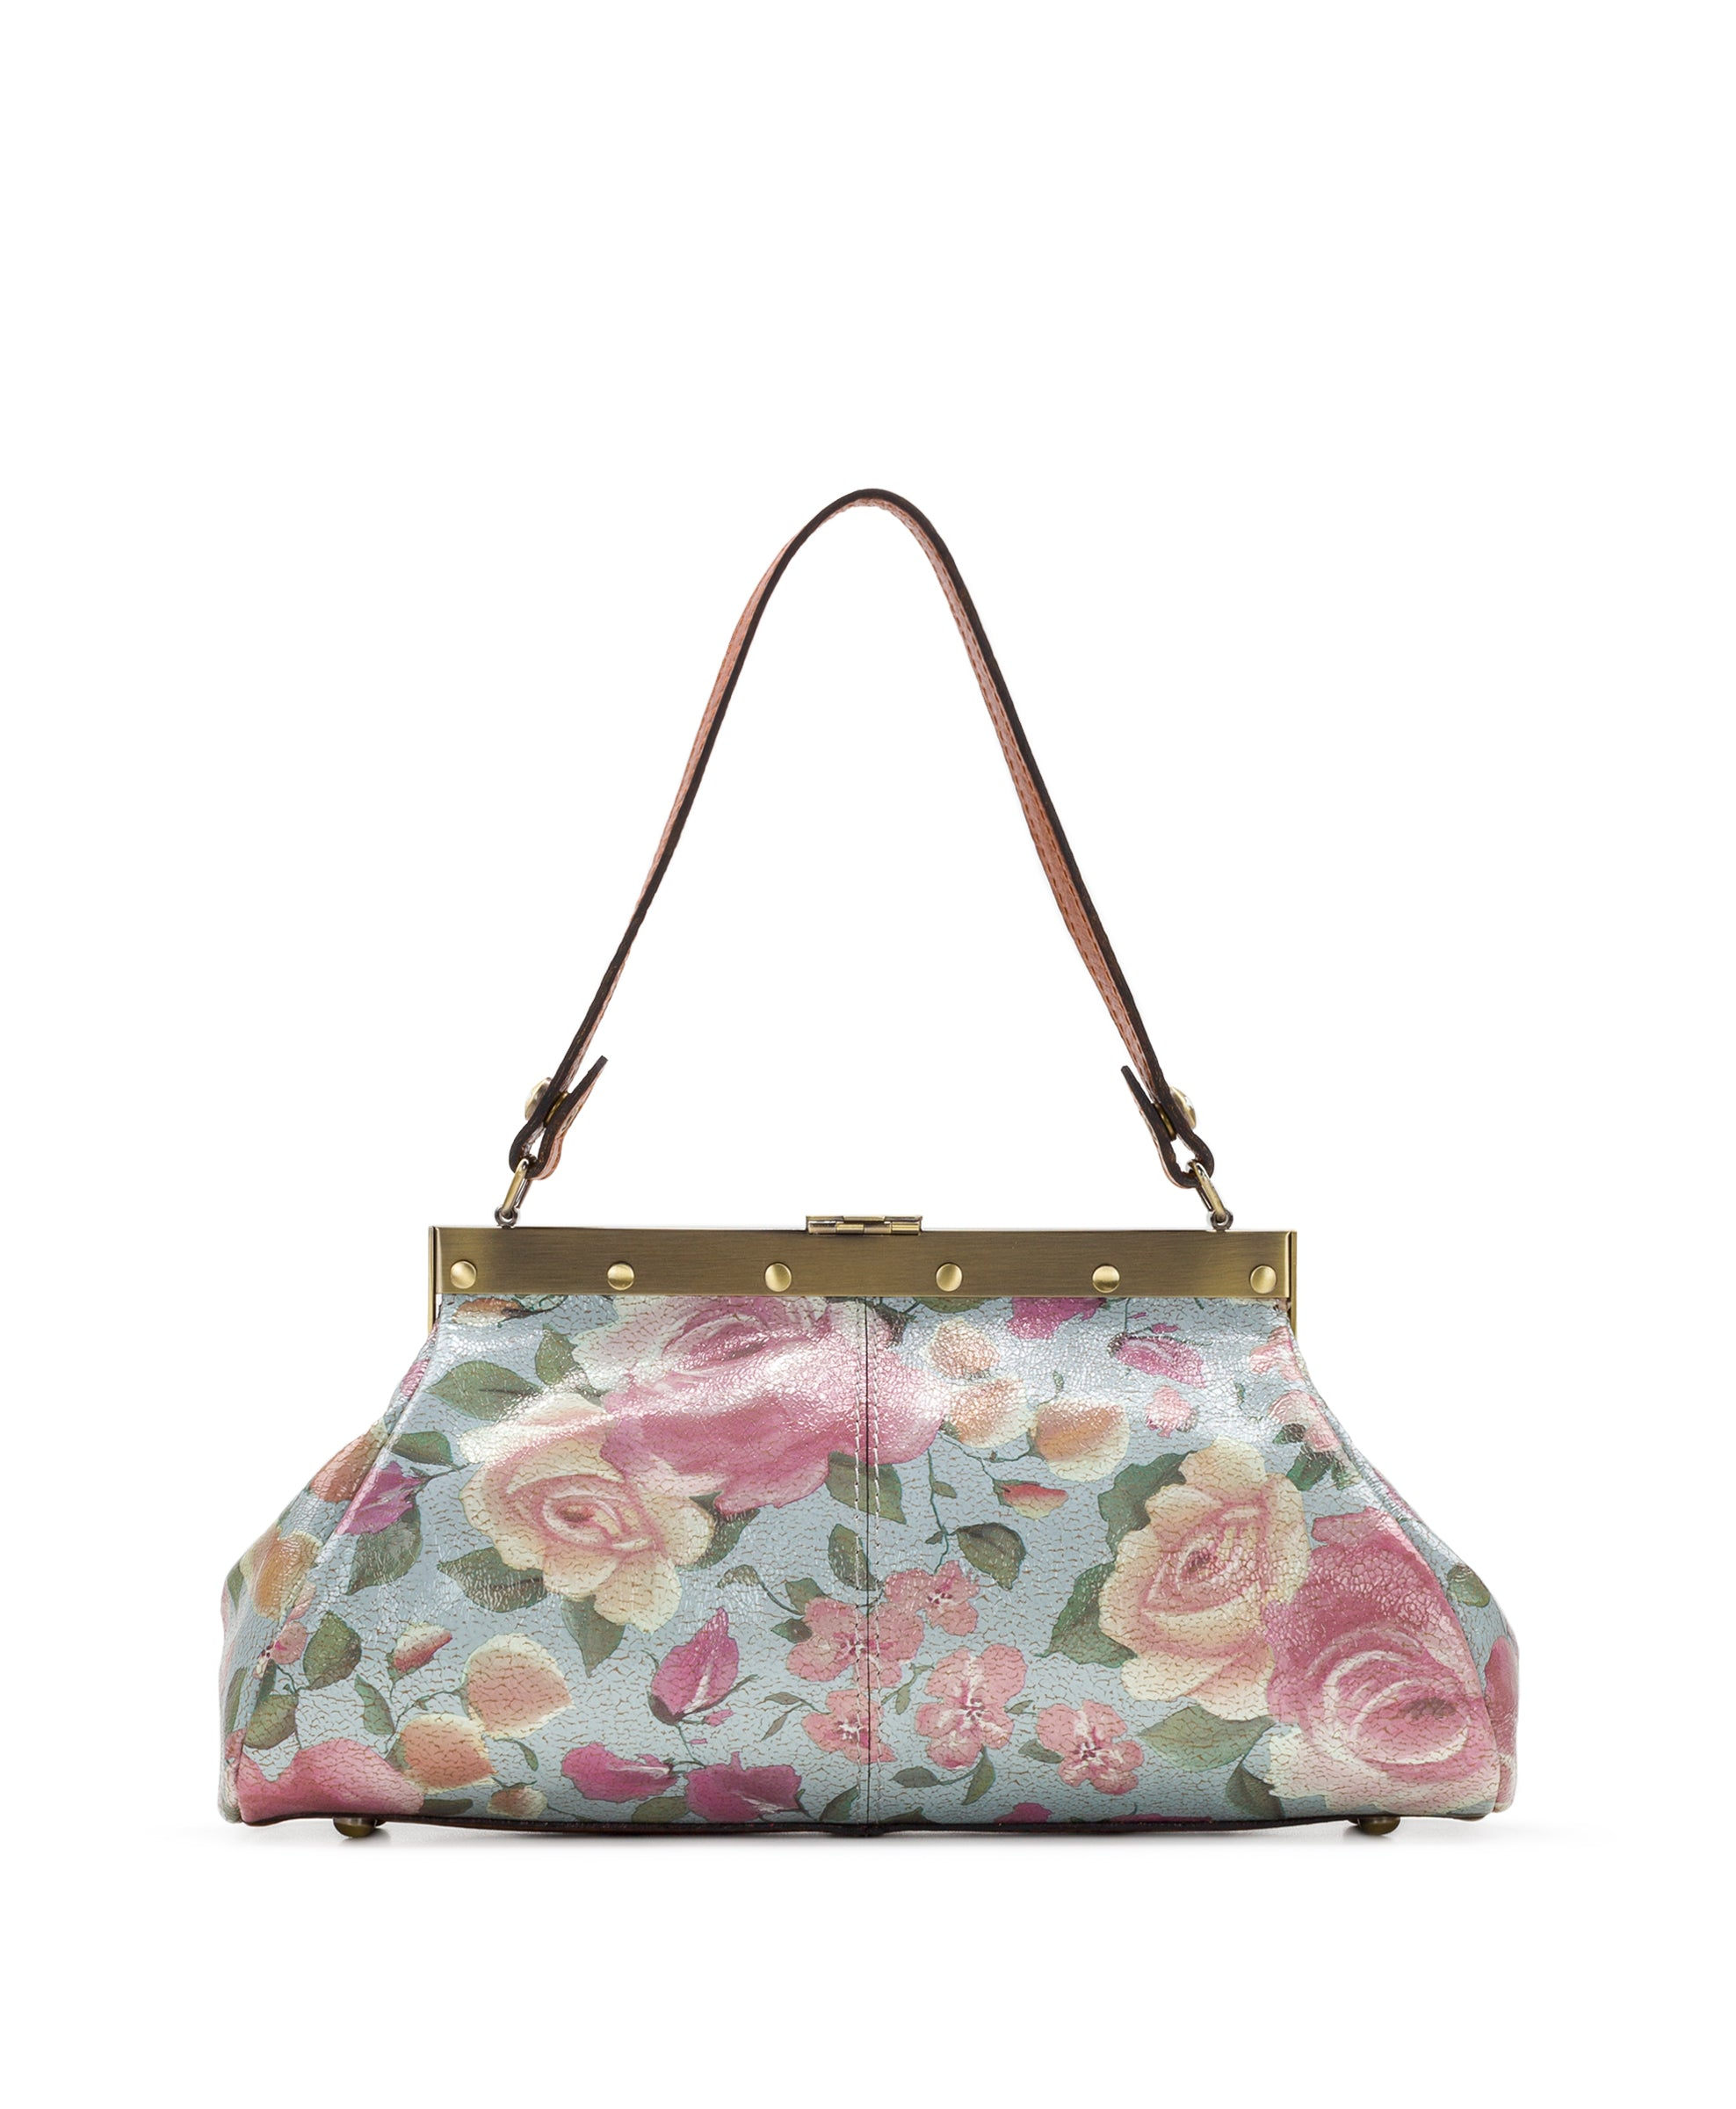 Ferrara Frame Satchel - Crackled Rose 2